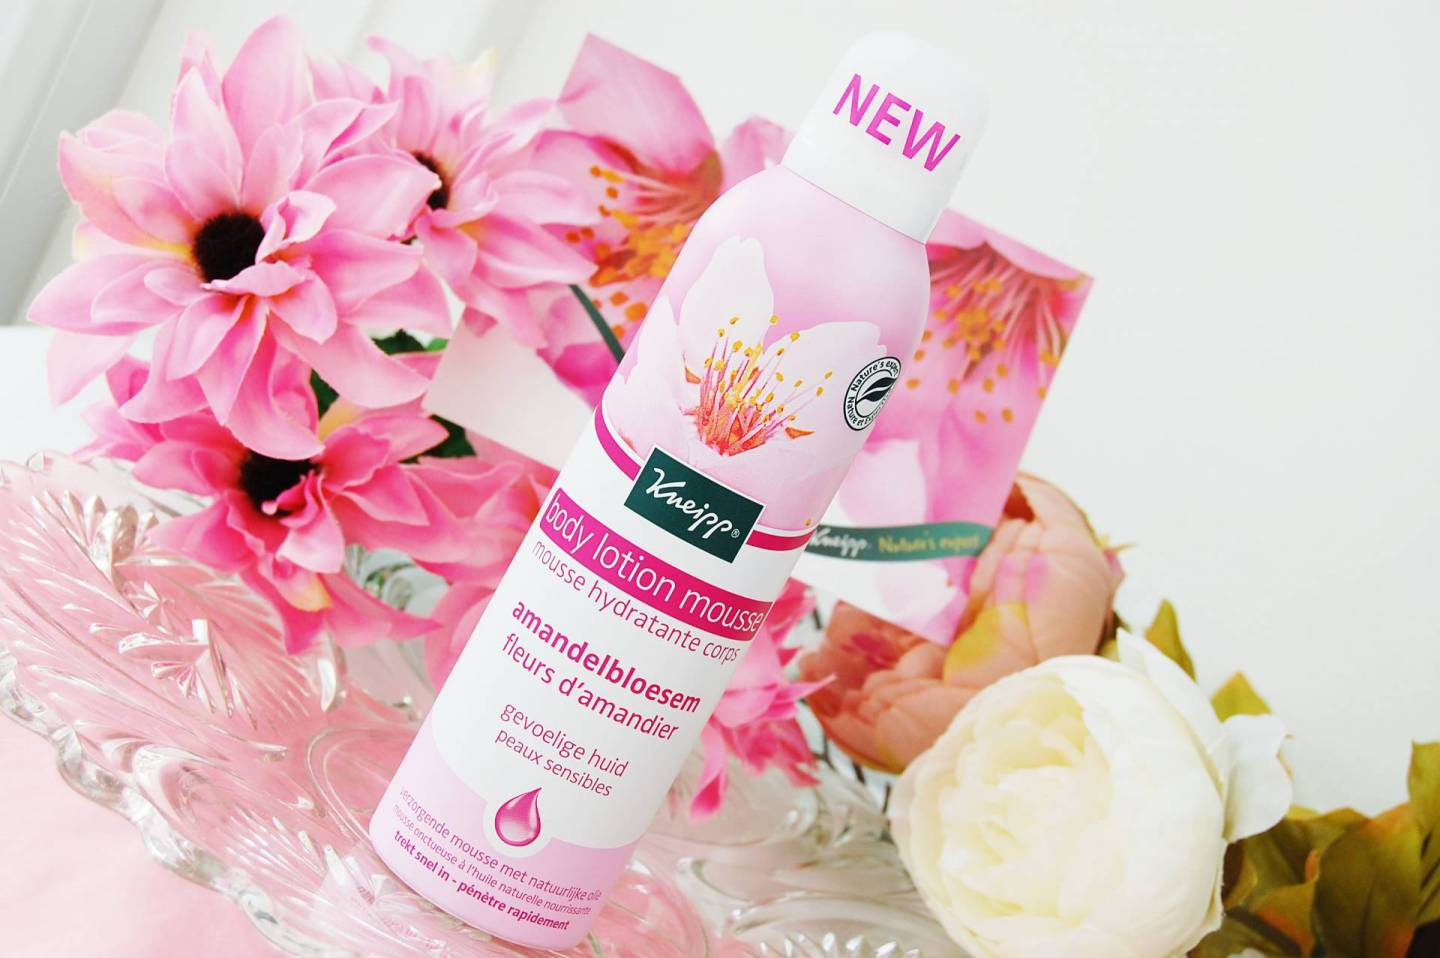 Kneipp Body Lotion Mousse Amandelbloesem